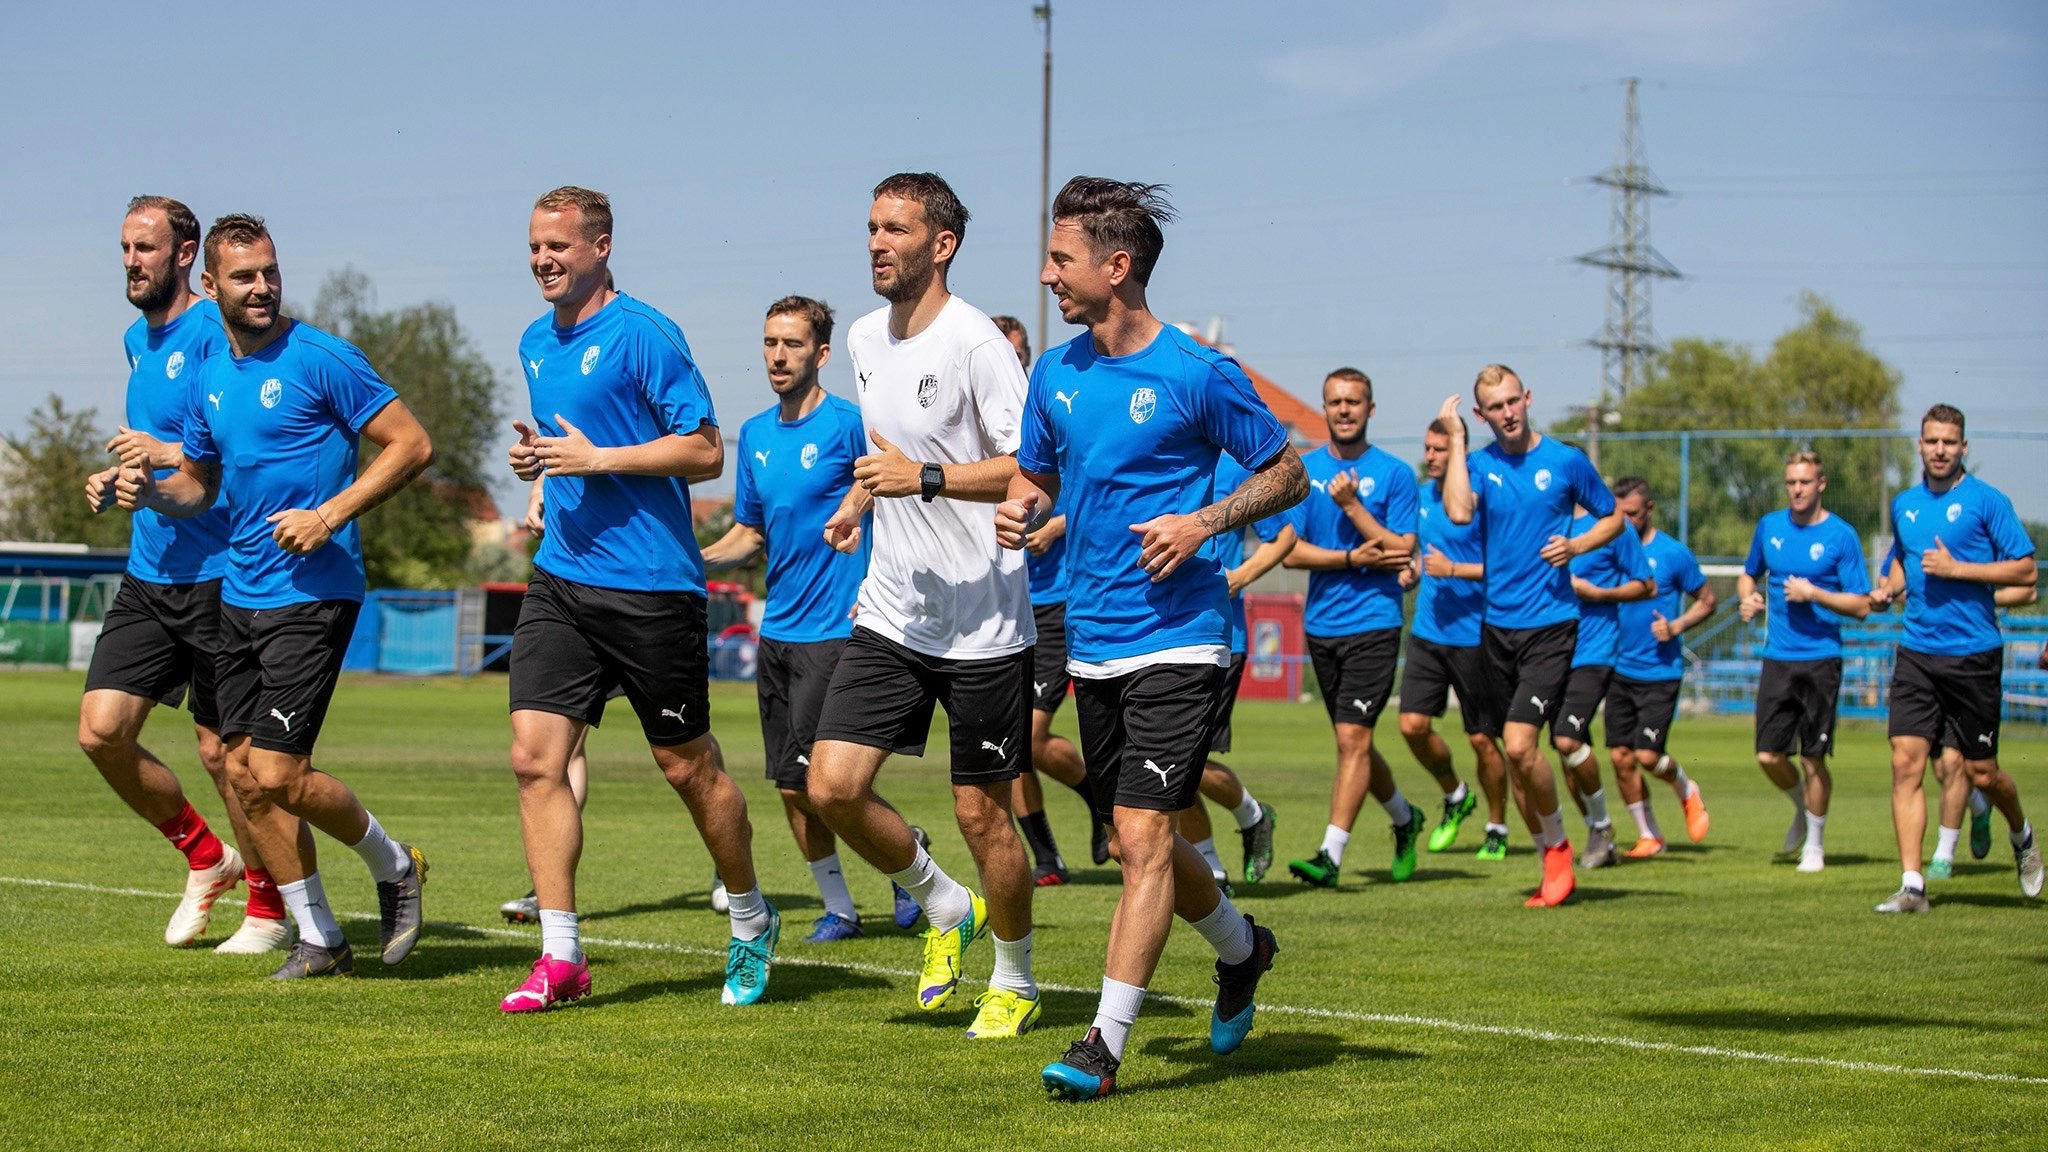 Viktoria gathered for the first training before 2019/2020 season